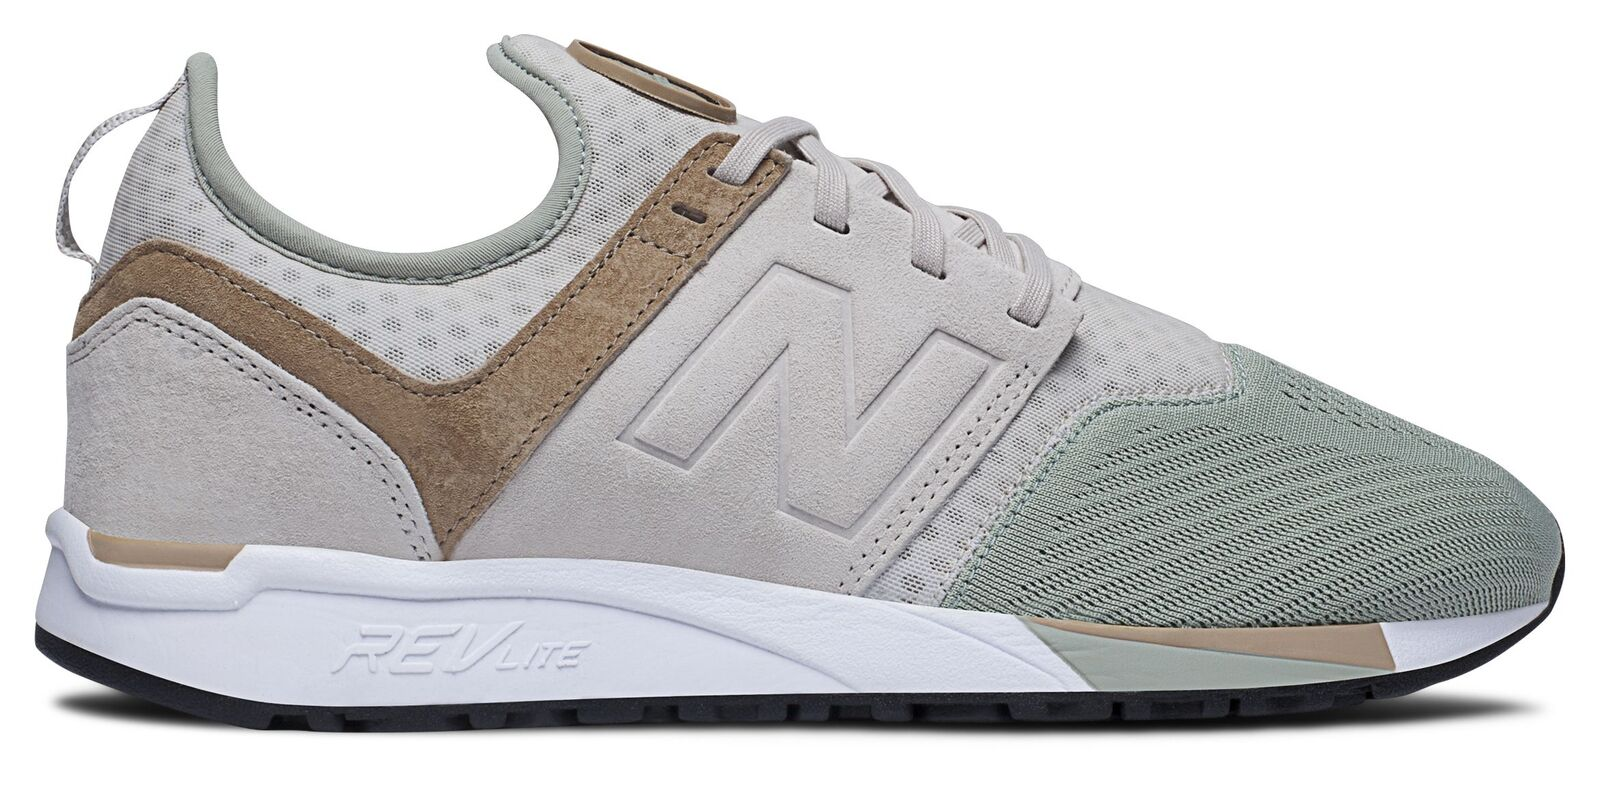 New Balance Men's 247 Sport Shoes Grey with Green